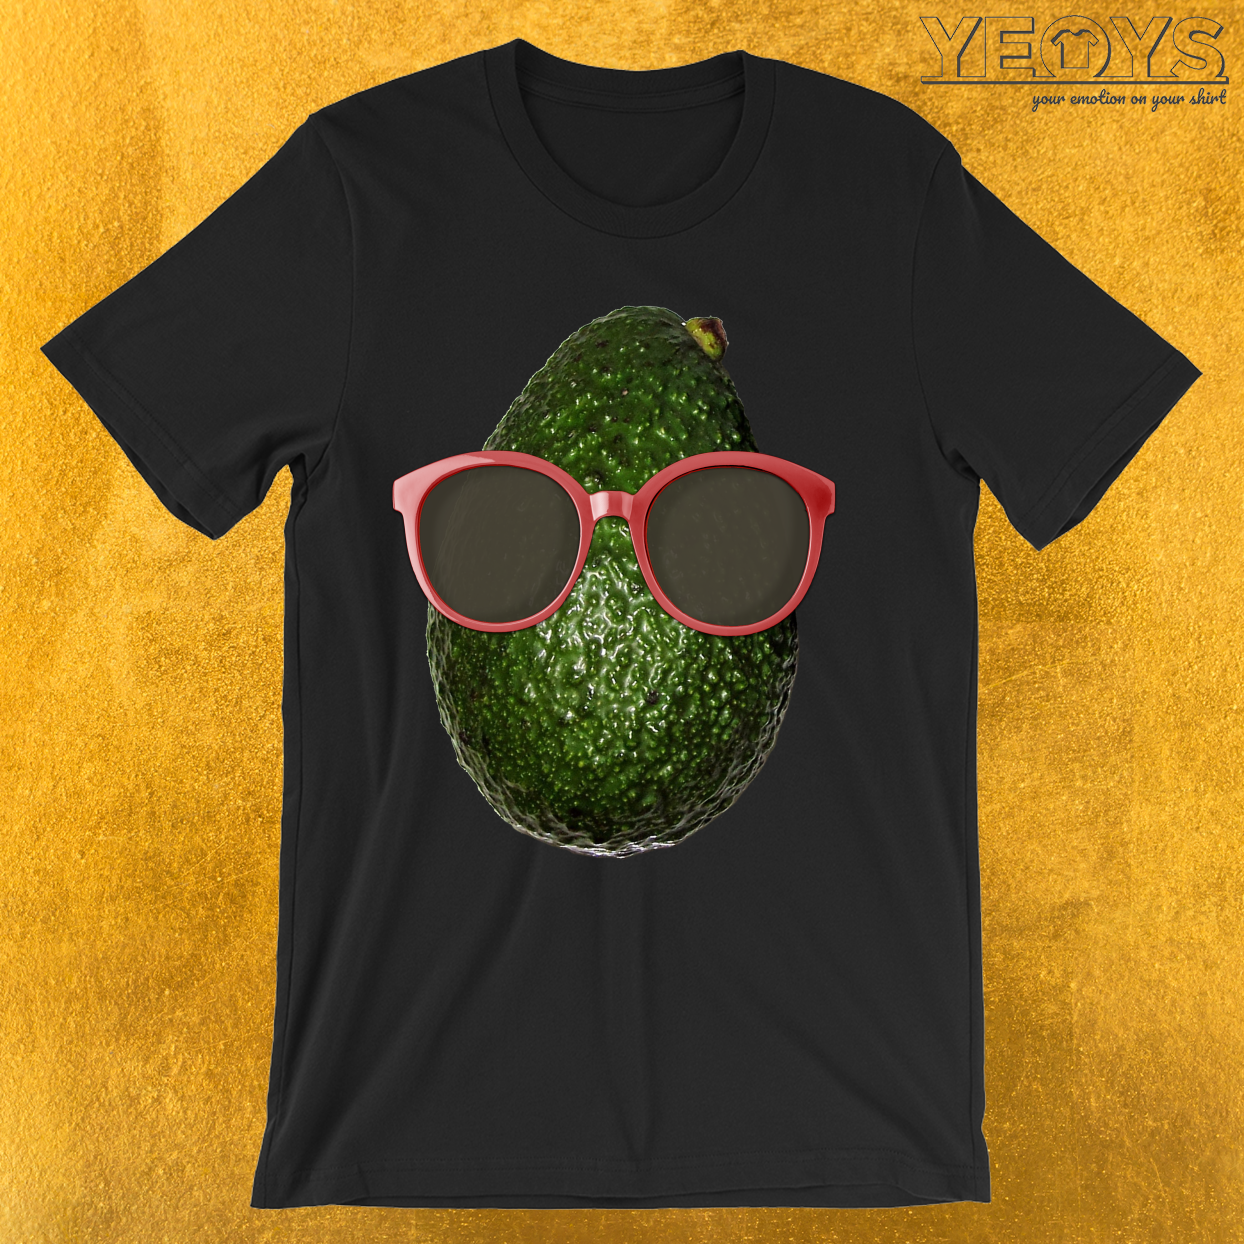 Avocado Wearing Sunglasses T-Shirt